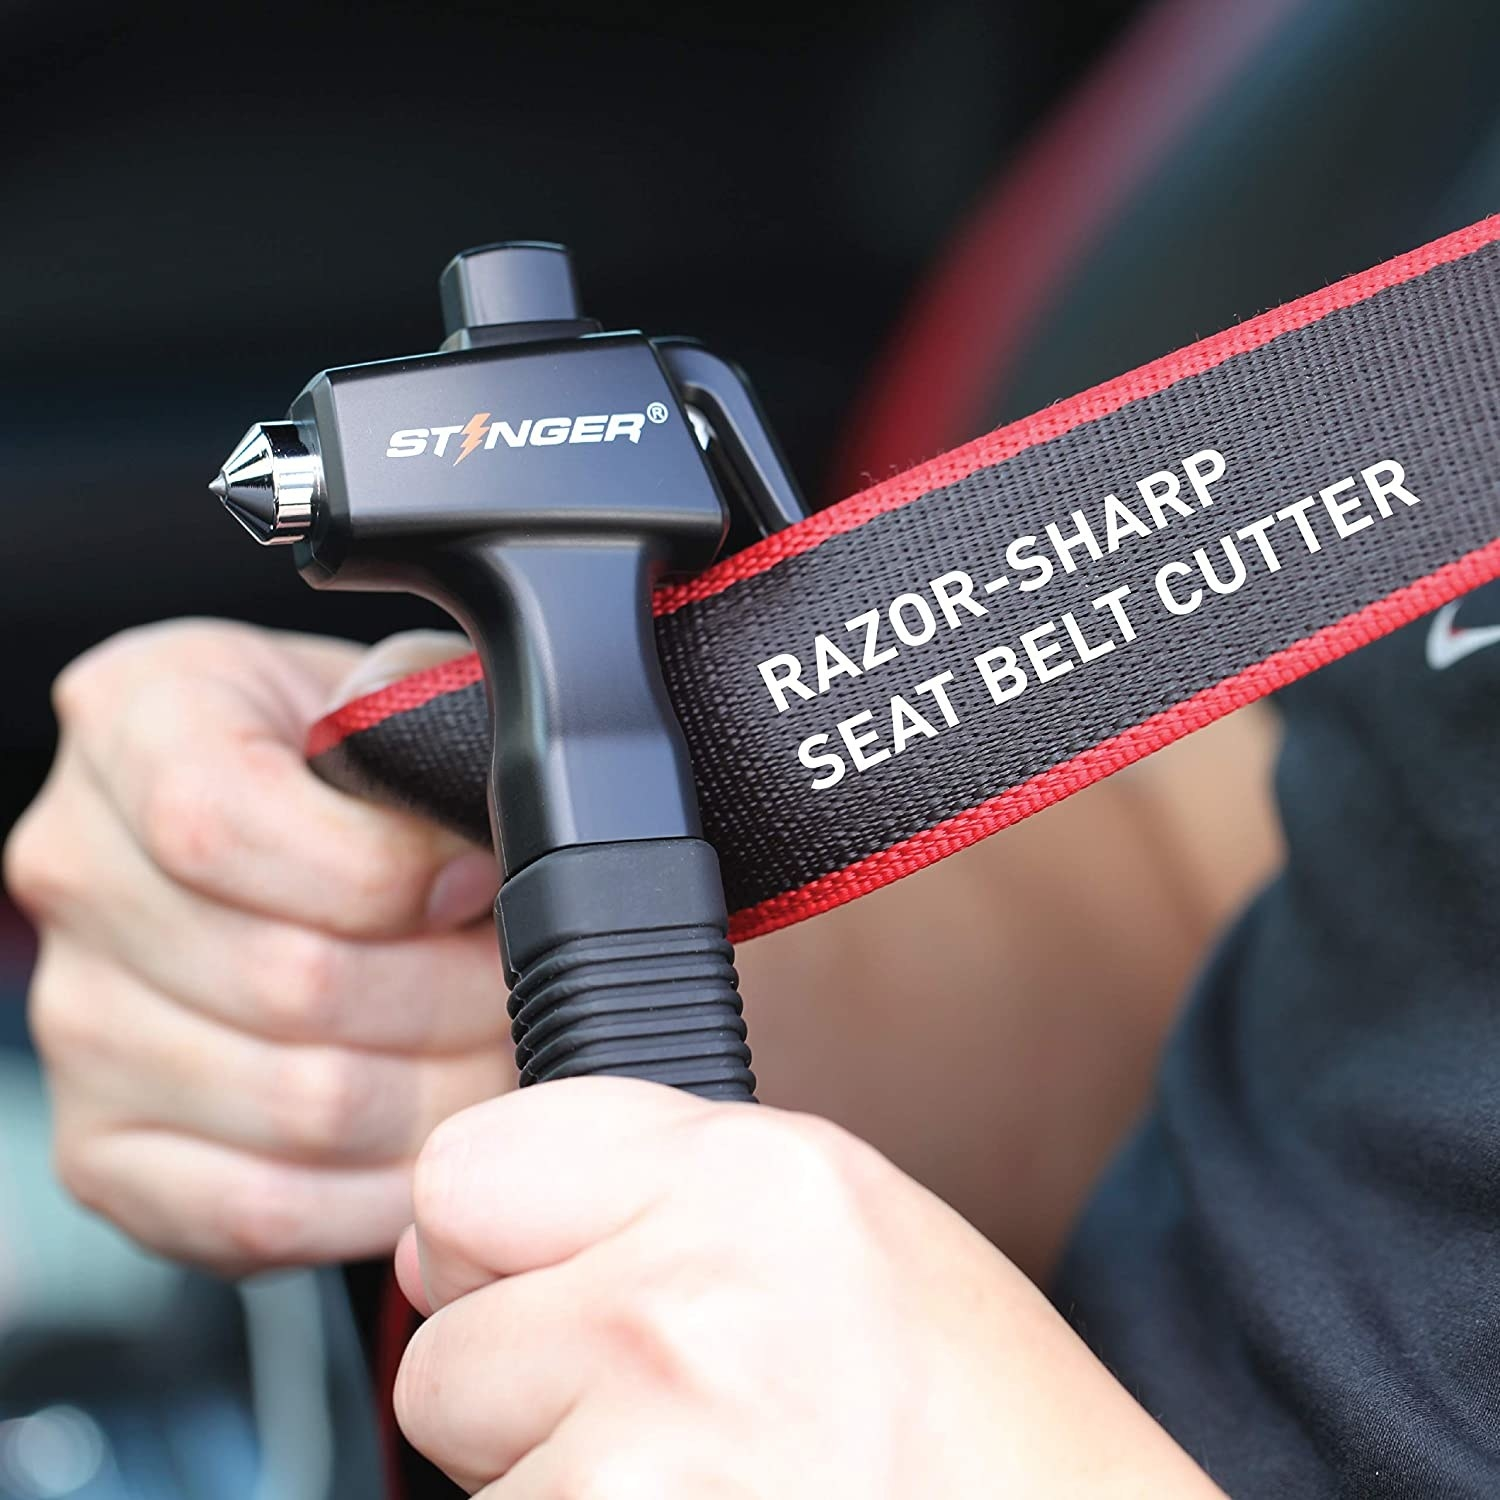 person cutting their seat belt with the device